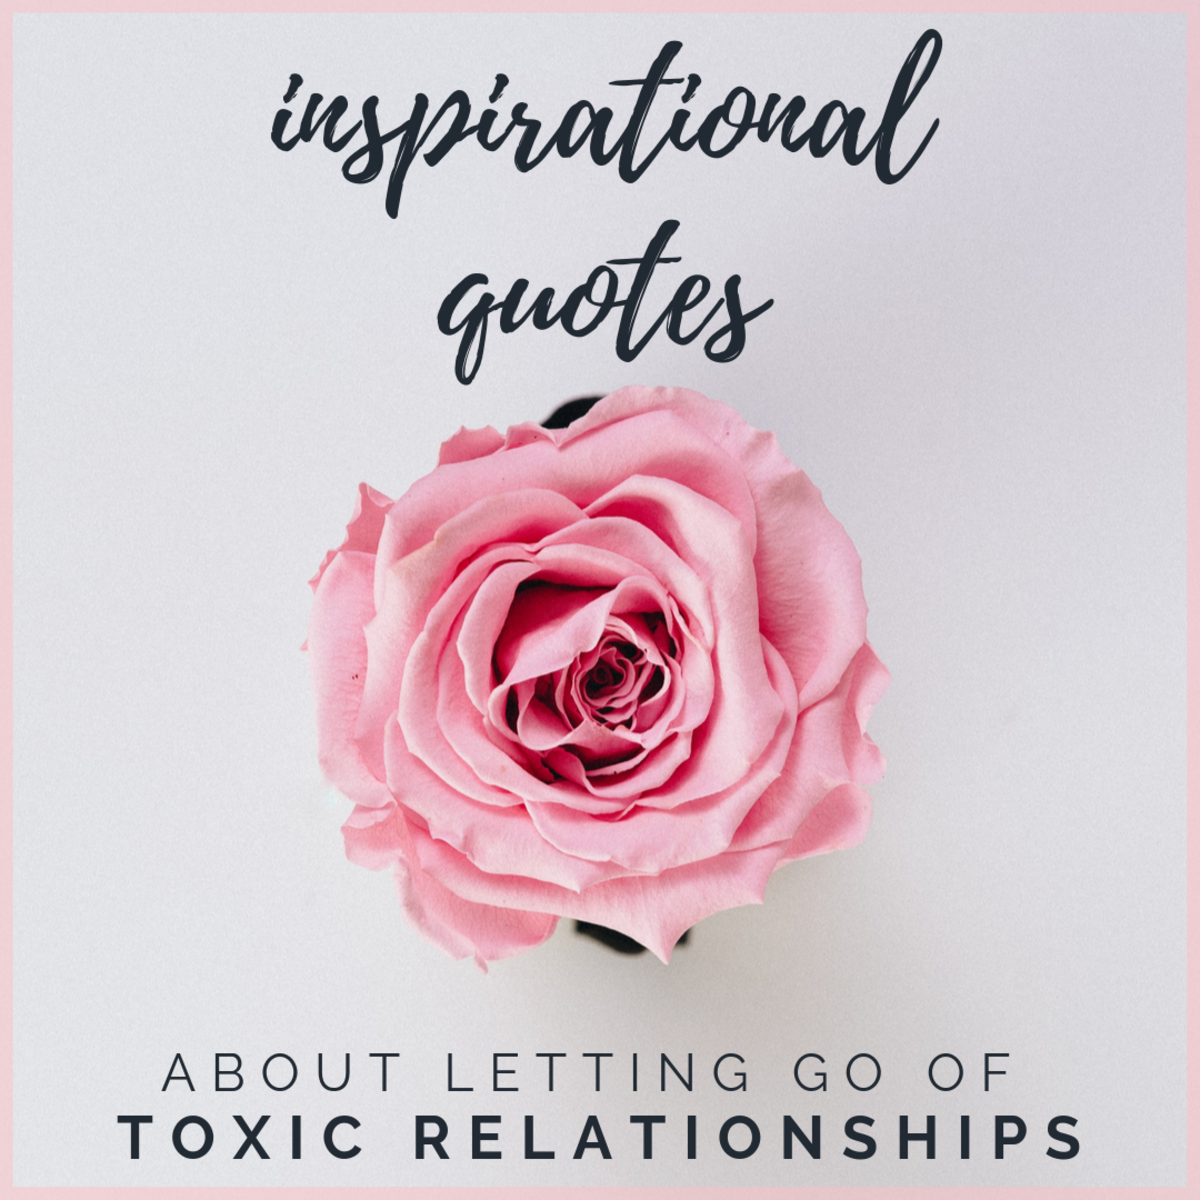 Toxic relationships can be extremely hard to end. These quotes will help give you the strength to let go of negativity and love yourself.